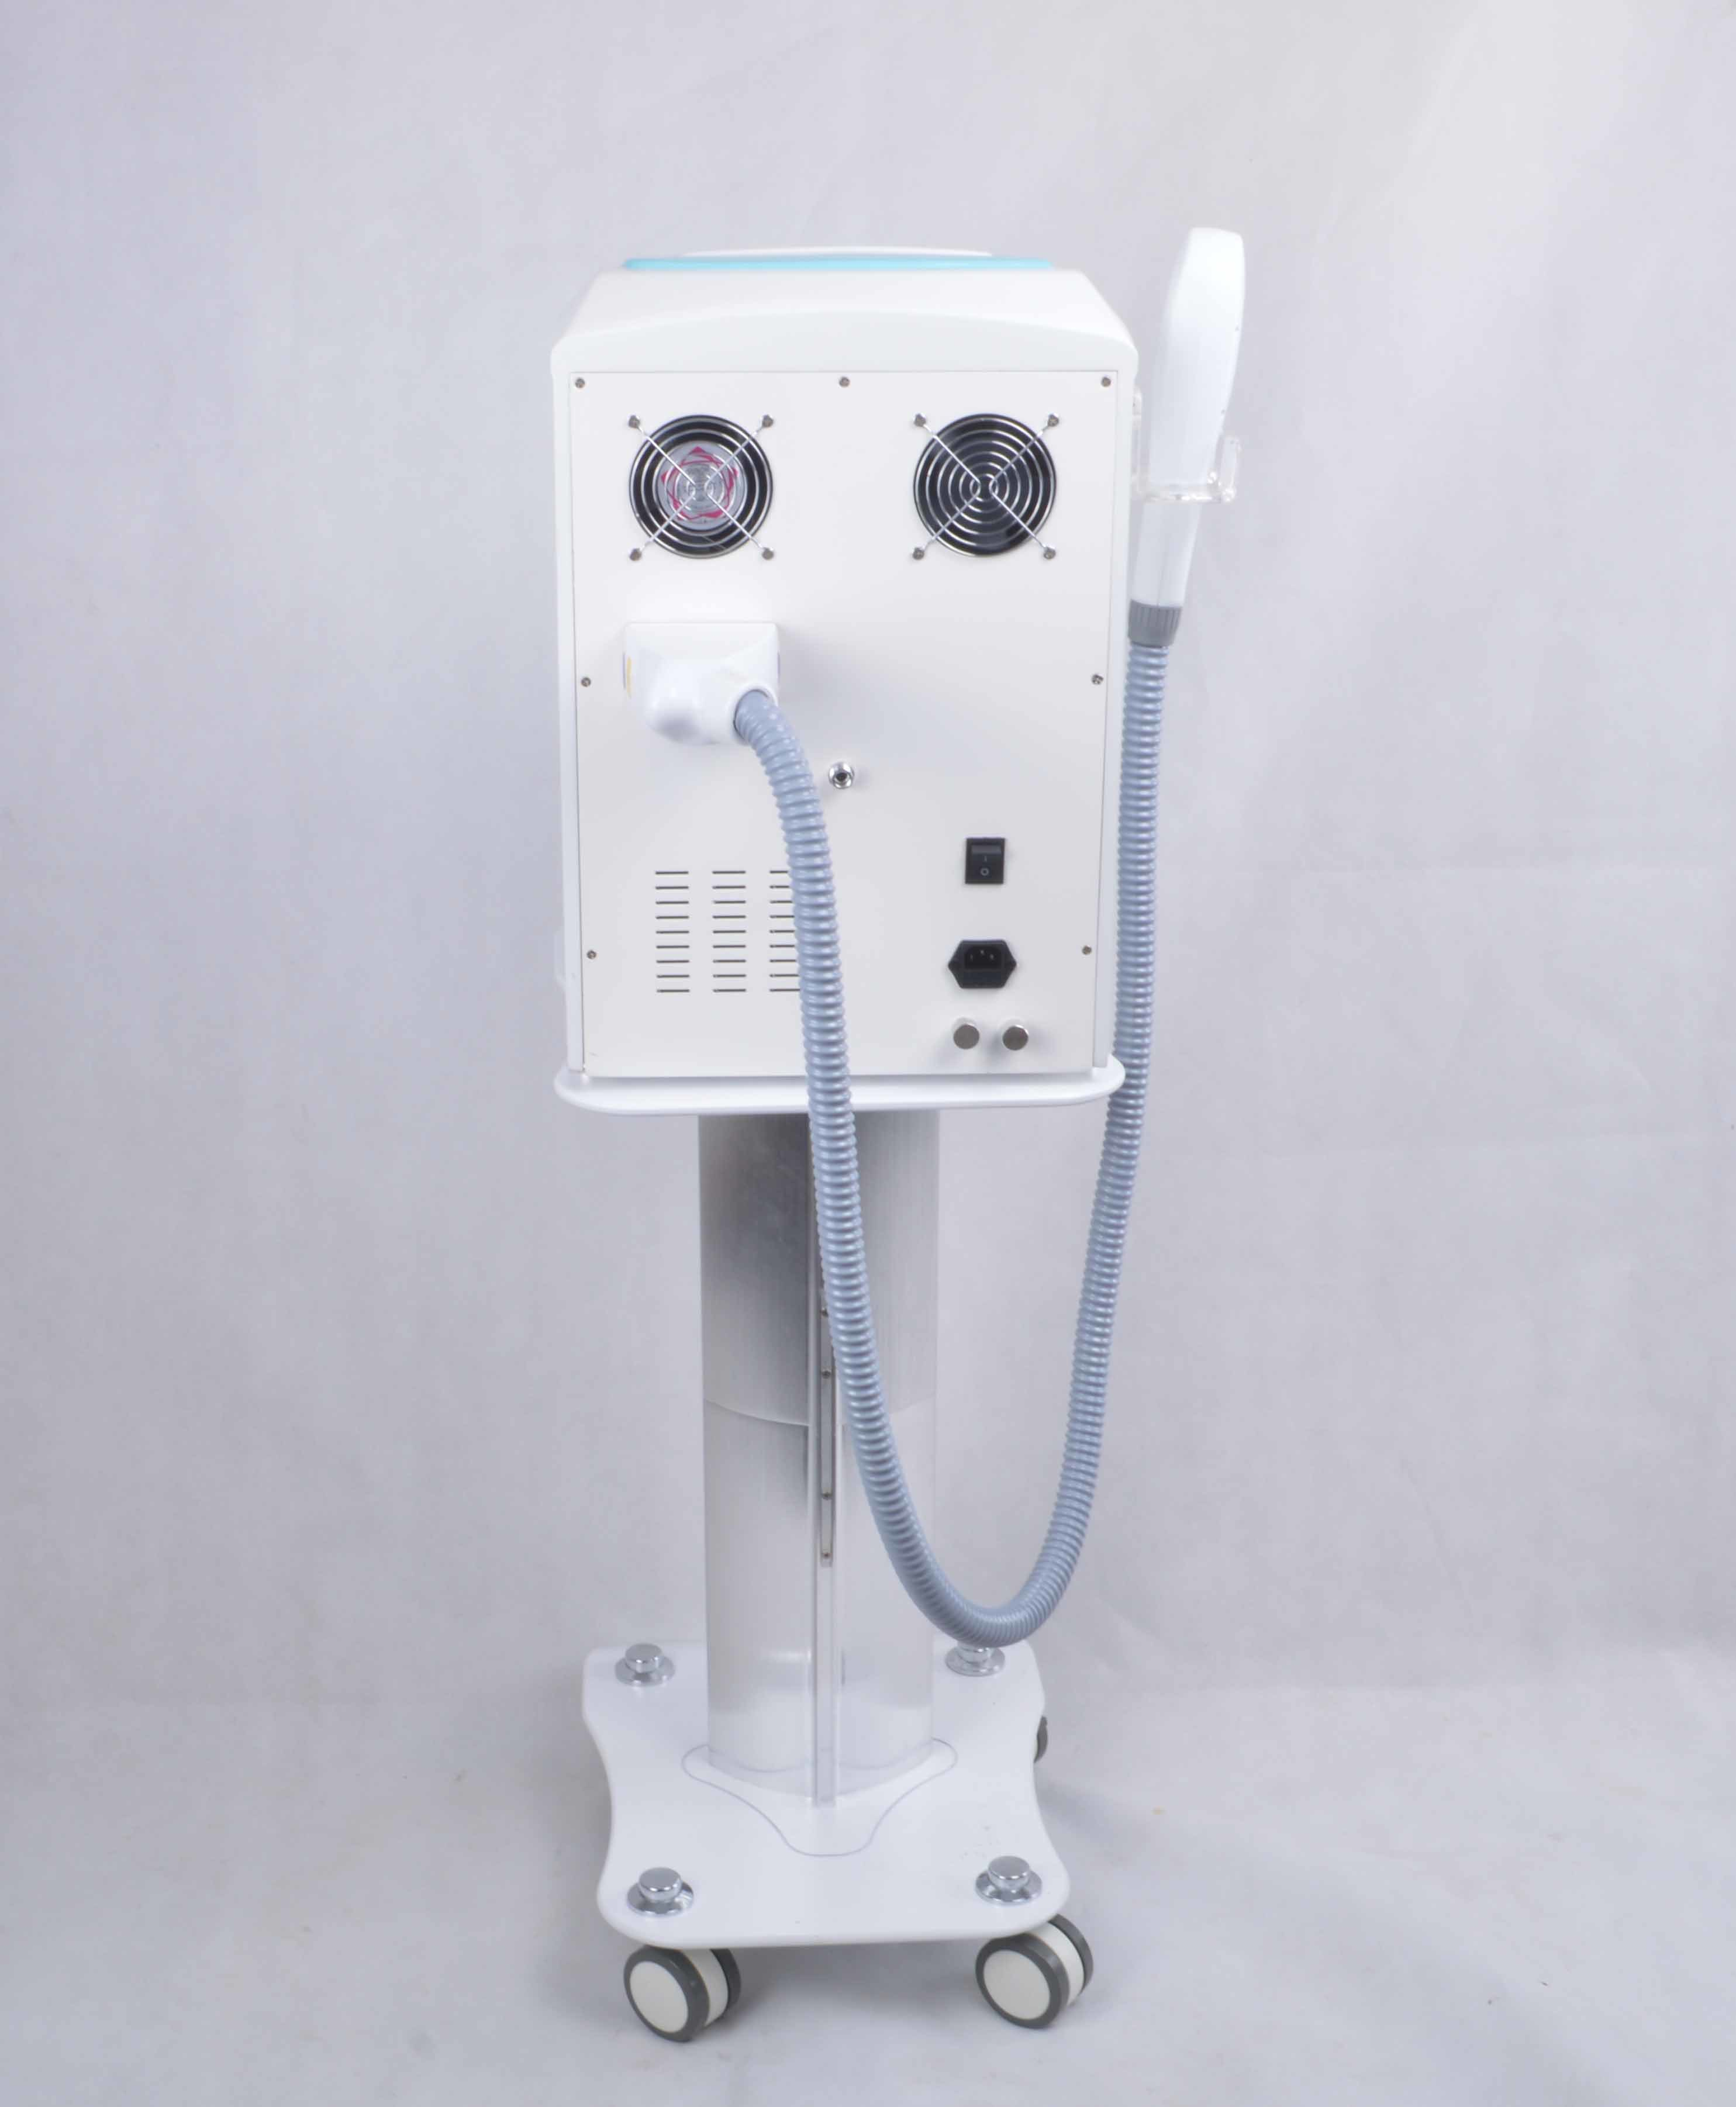 New IPL Laser Hair Removal Skin Rejuvenation Wrinkle Removal Machine Hair Removal